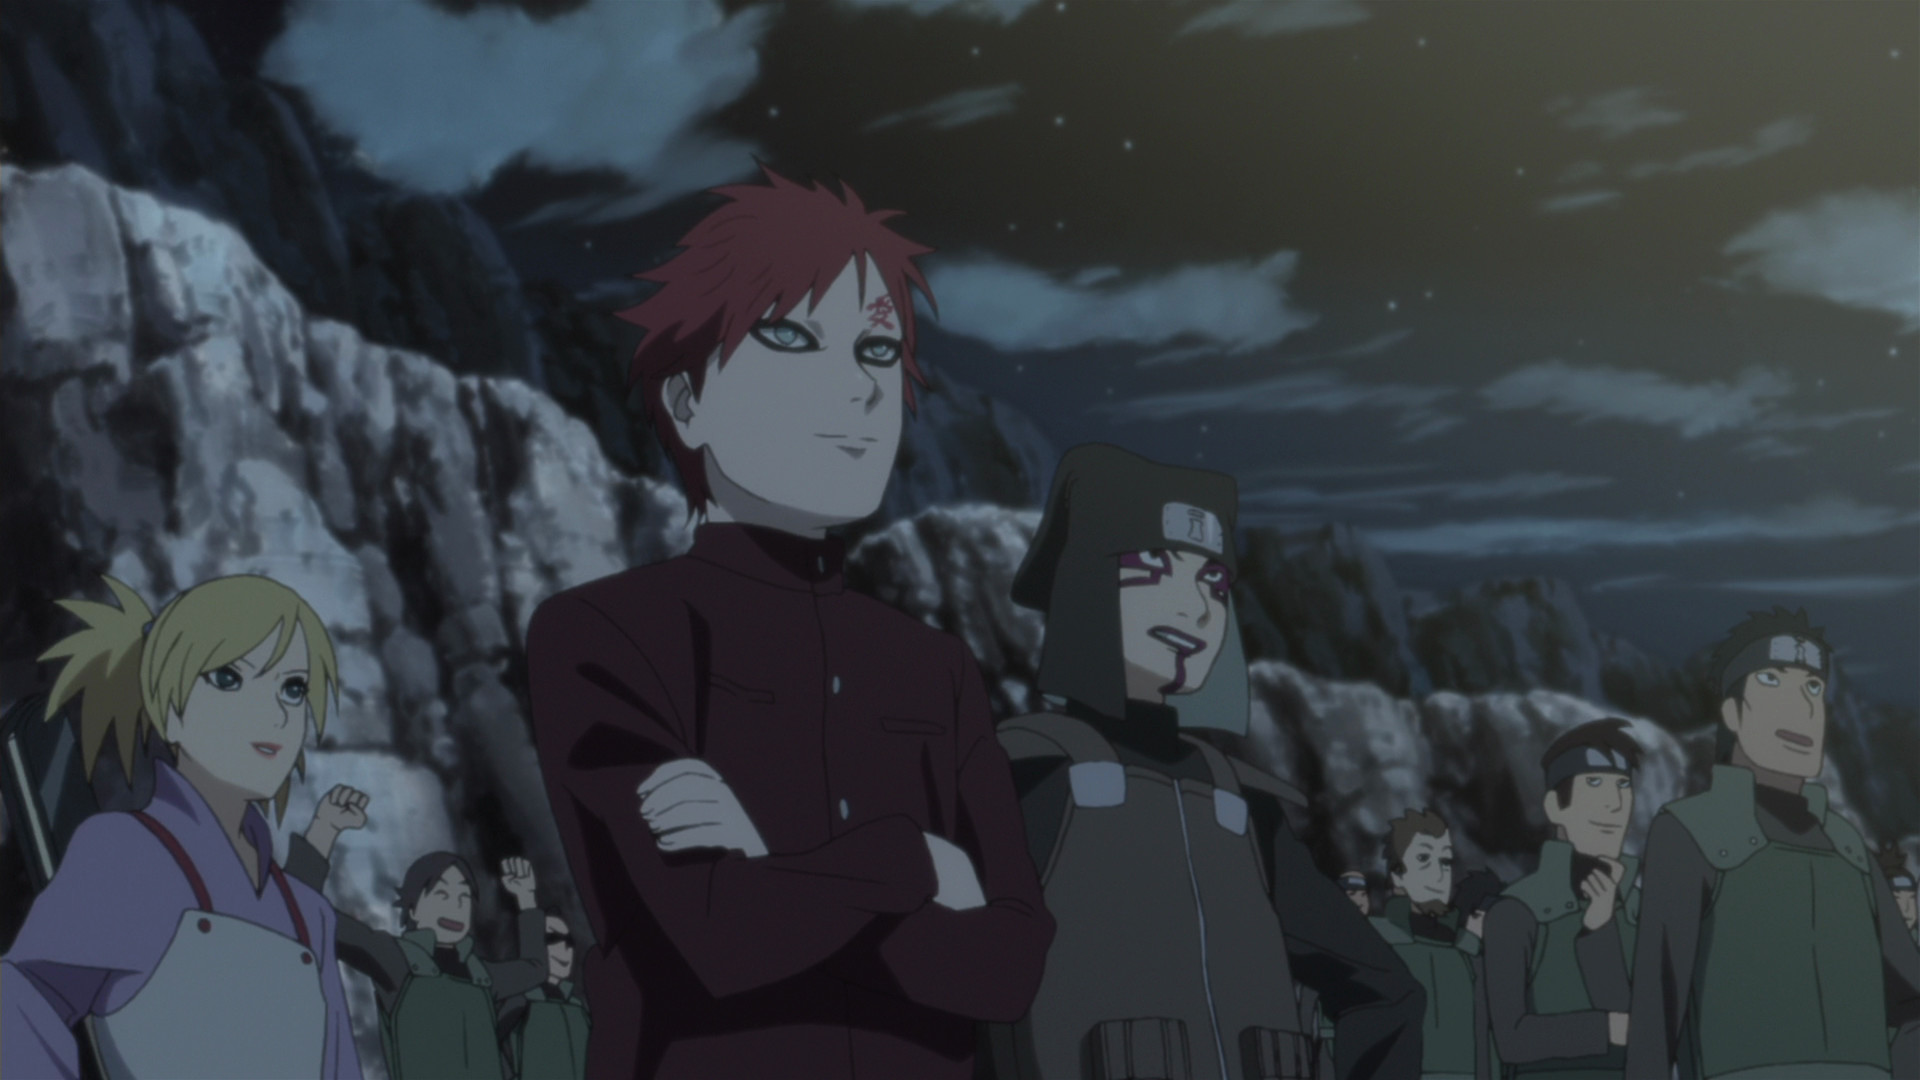 Res: 1920x1080, The Last: Naruto the Movie